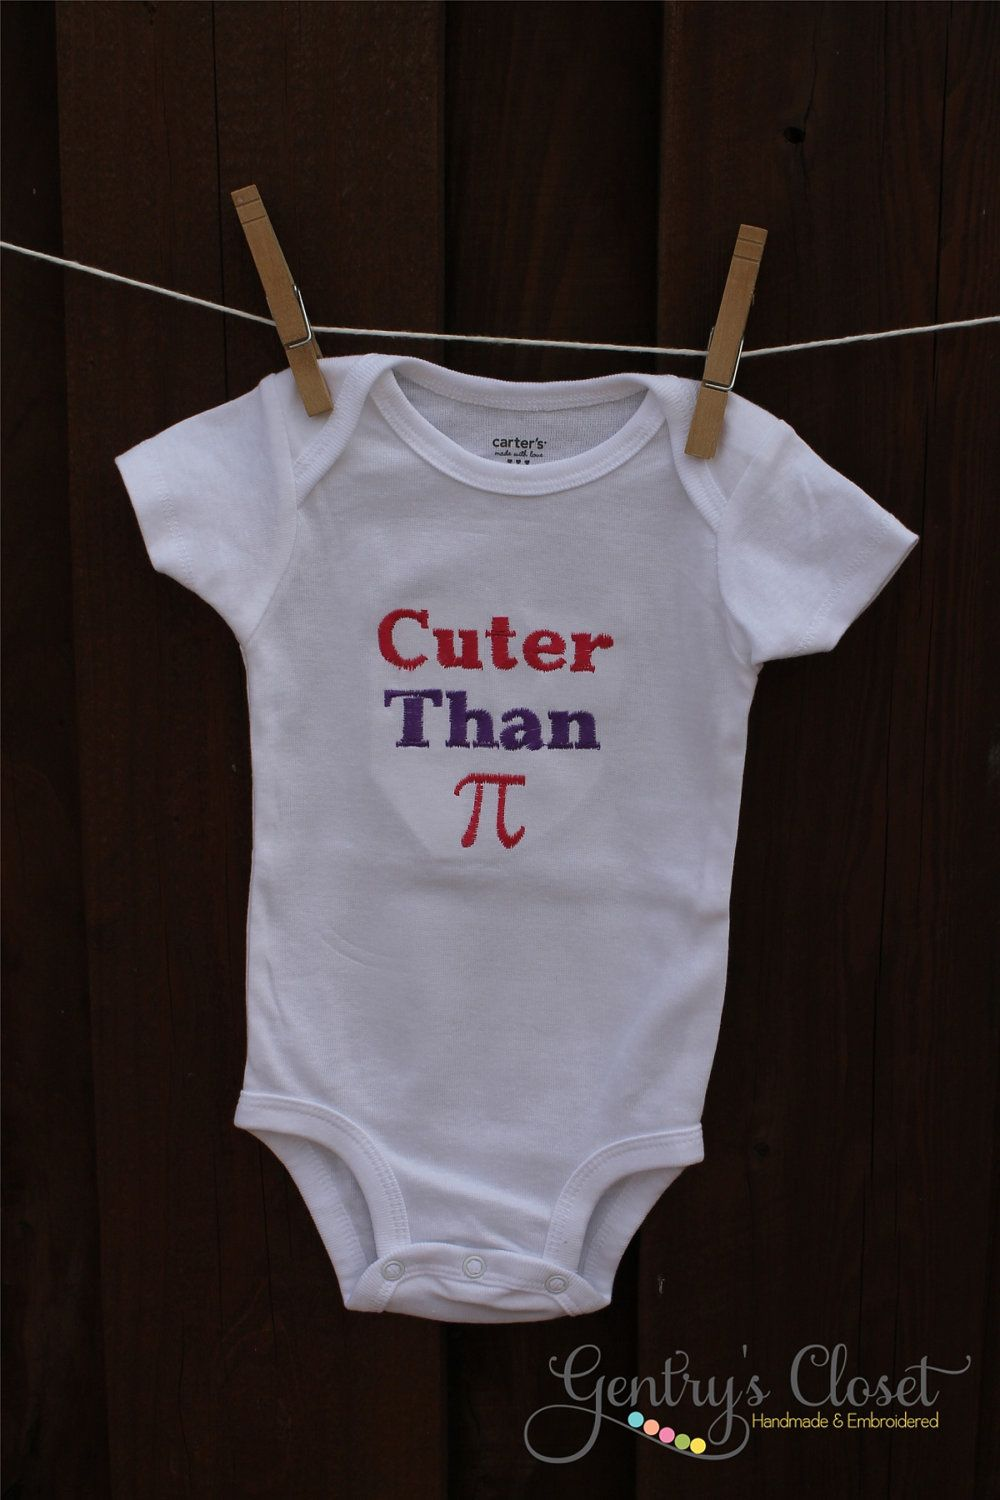 76f8ecc9b For the math teacher in me I HAD to pin this!!! Baby Girl or Boy Clothes -  Cuter Than Pi Onesie or Shirt - Embroidered infant bodysuit. Baby Shower  Gift.